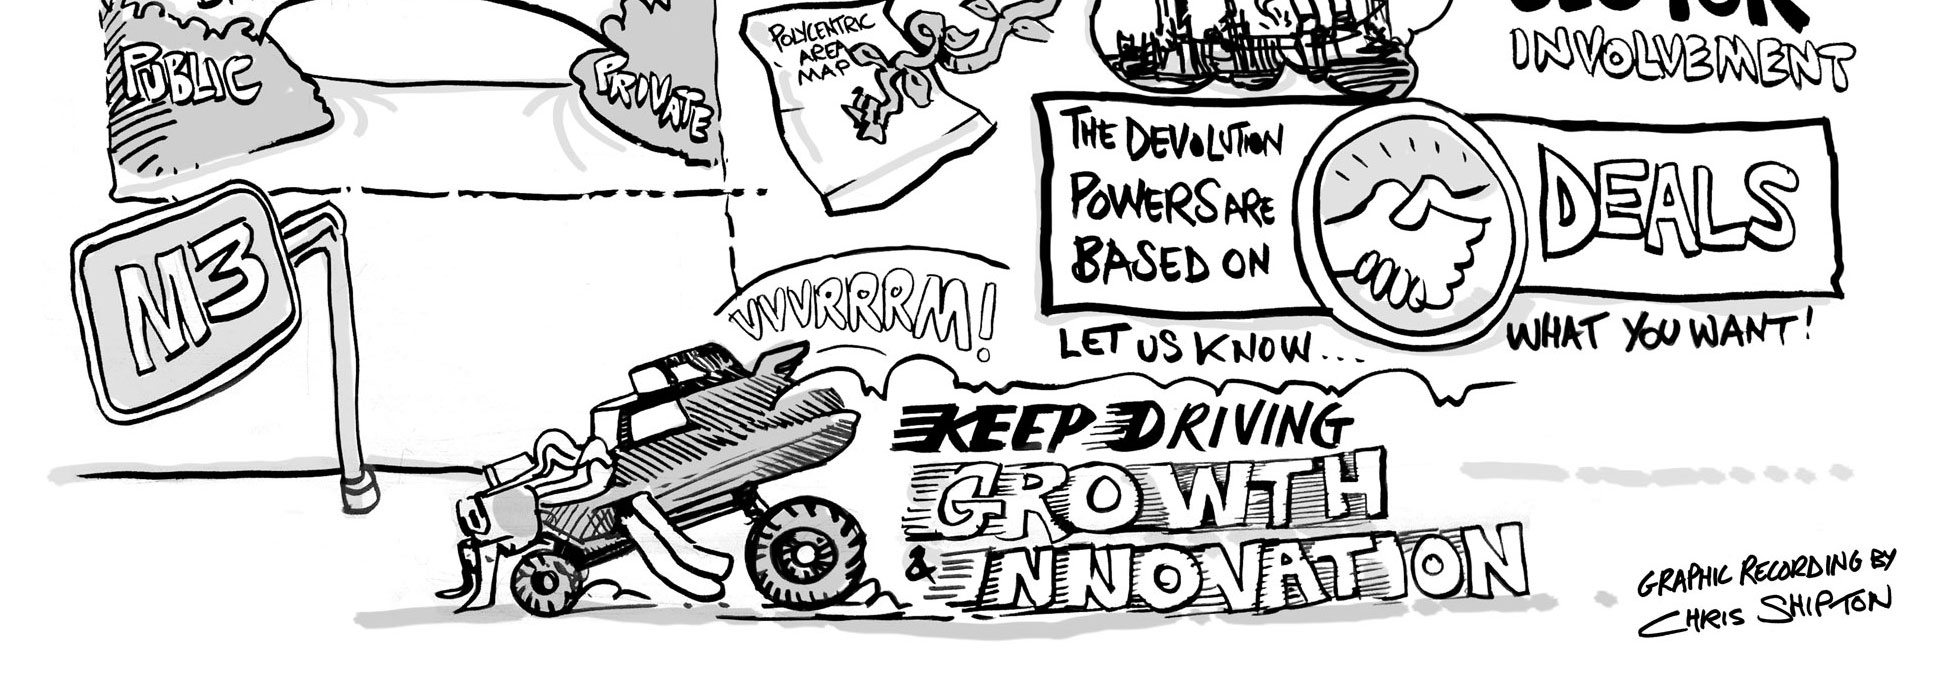 A detail from a Graphic Recording showing the Giga Horse Driving Growth